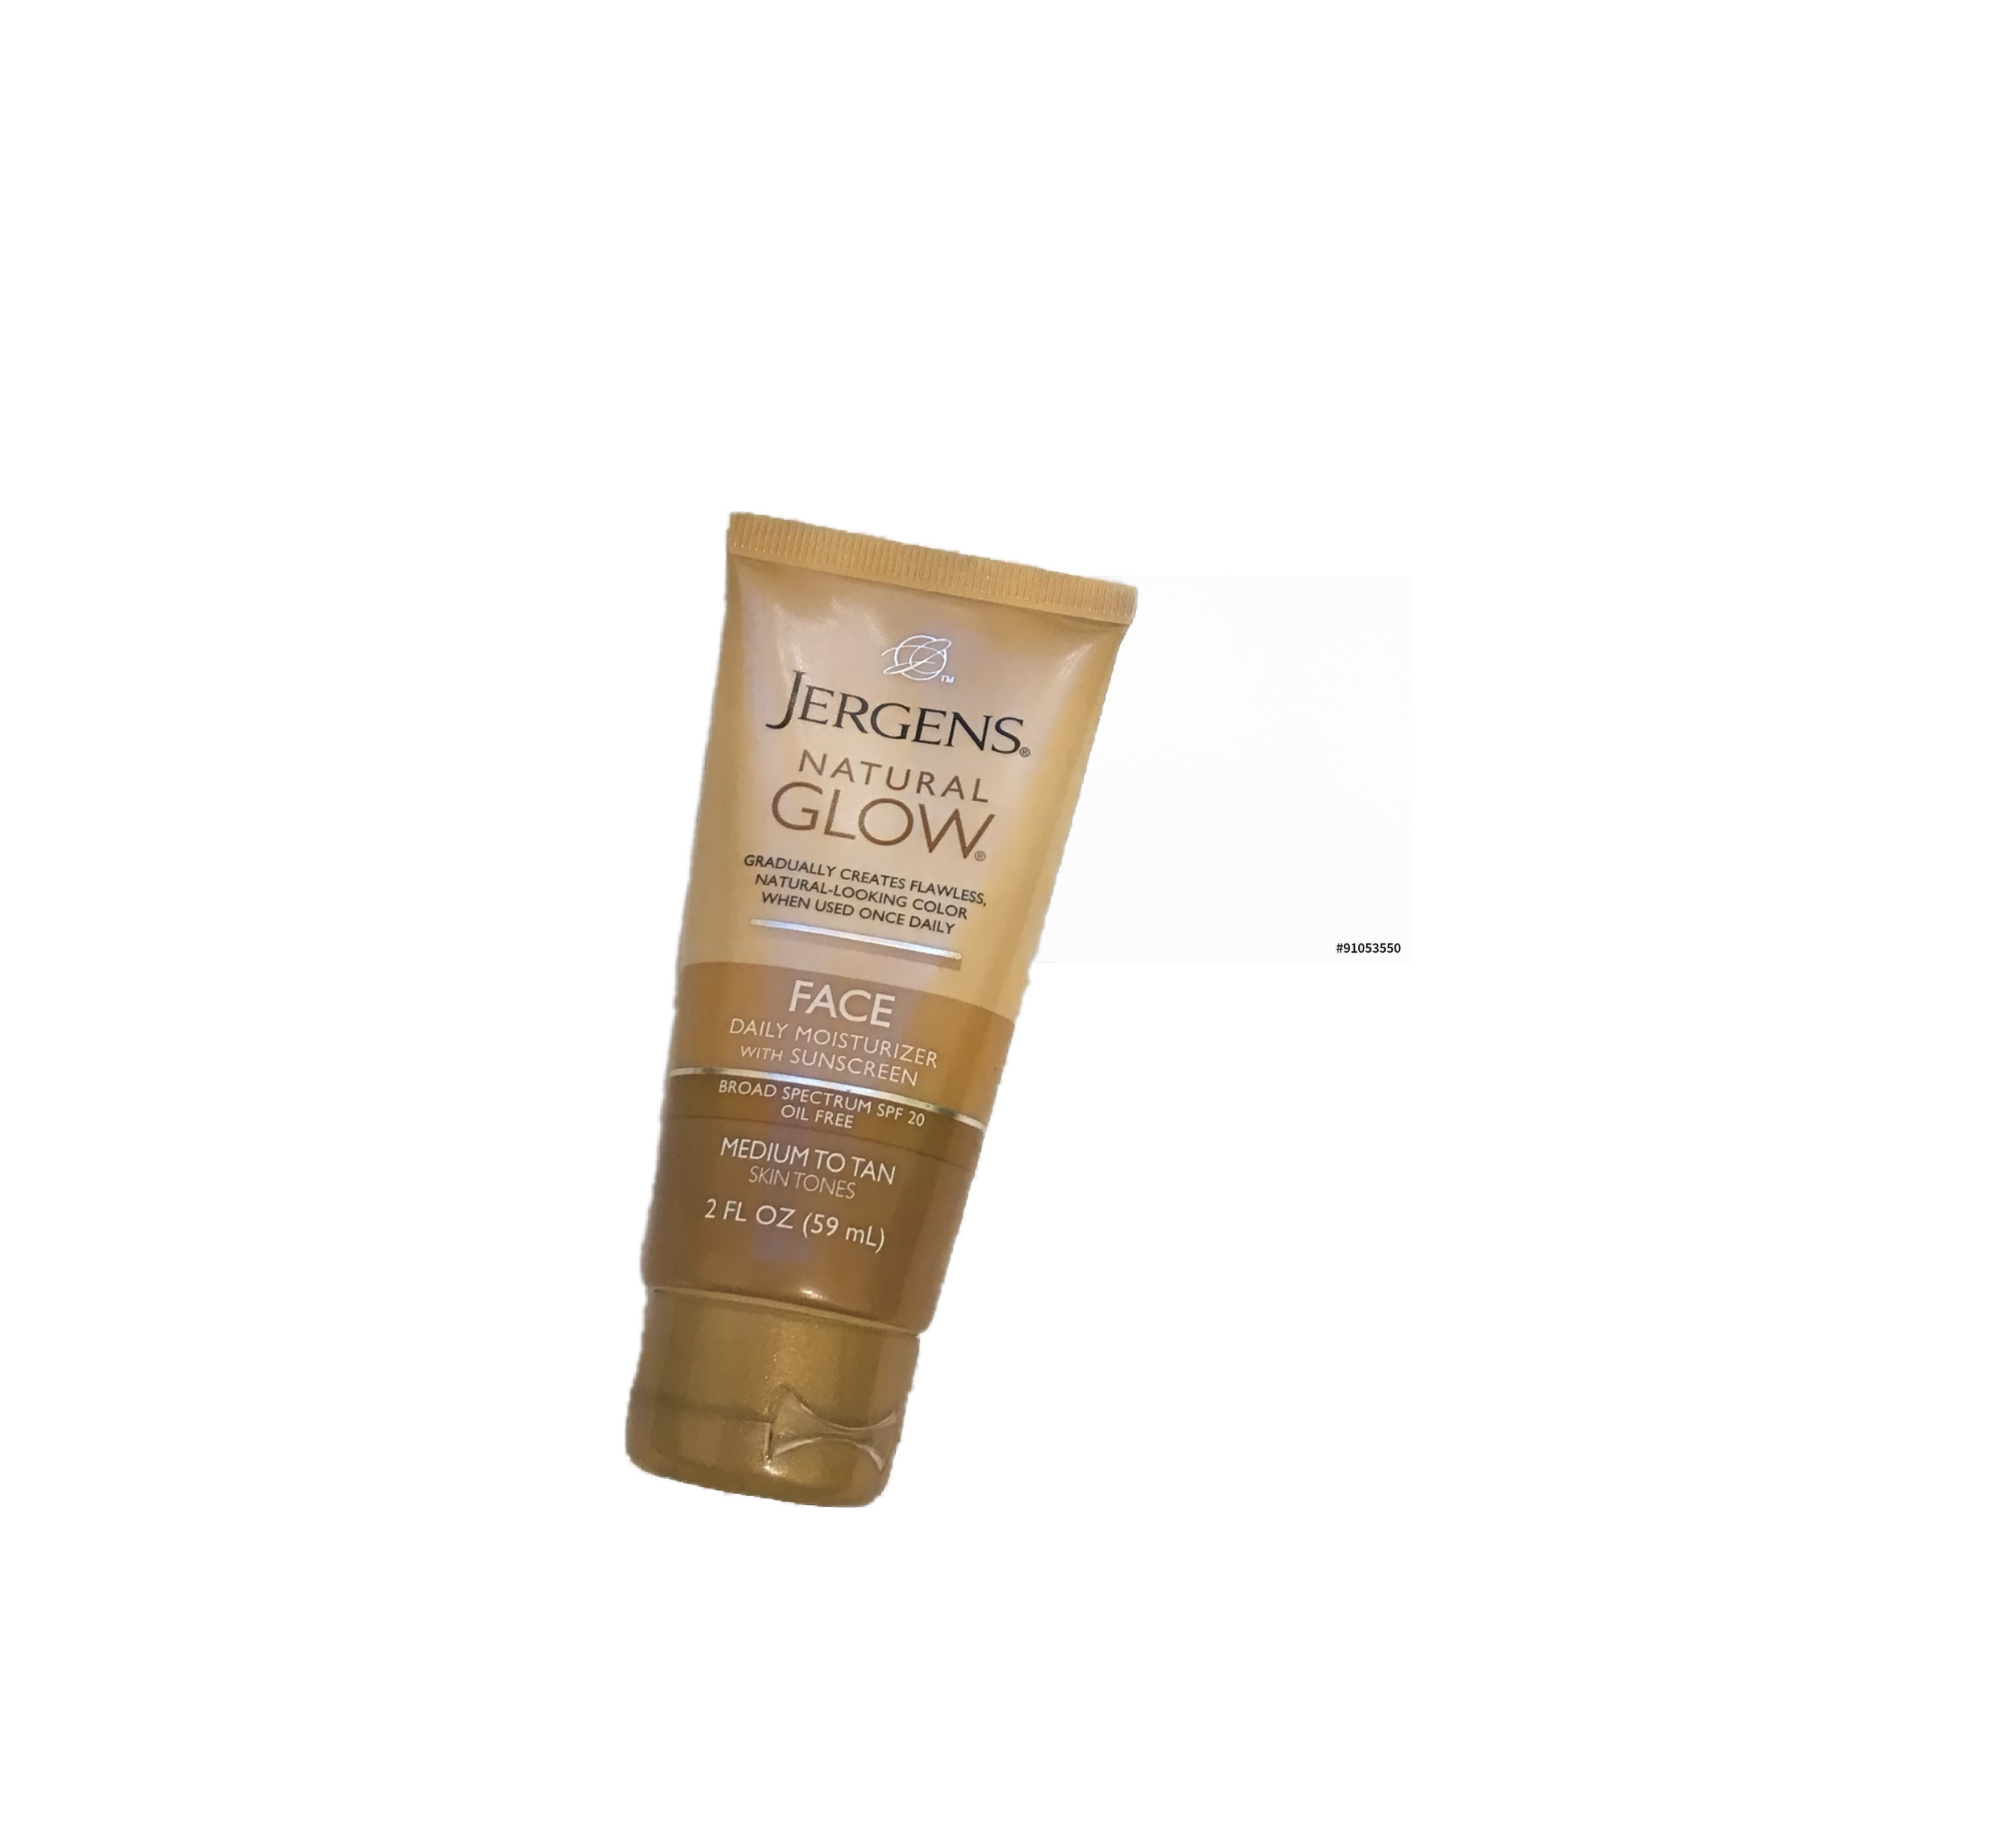 Jergens Natural Glow Daily Facial Moisturizer